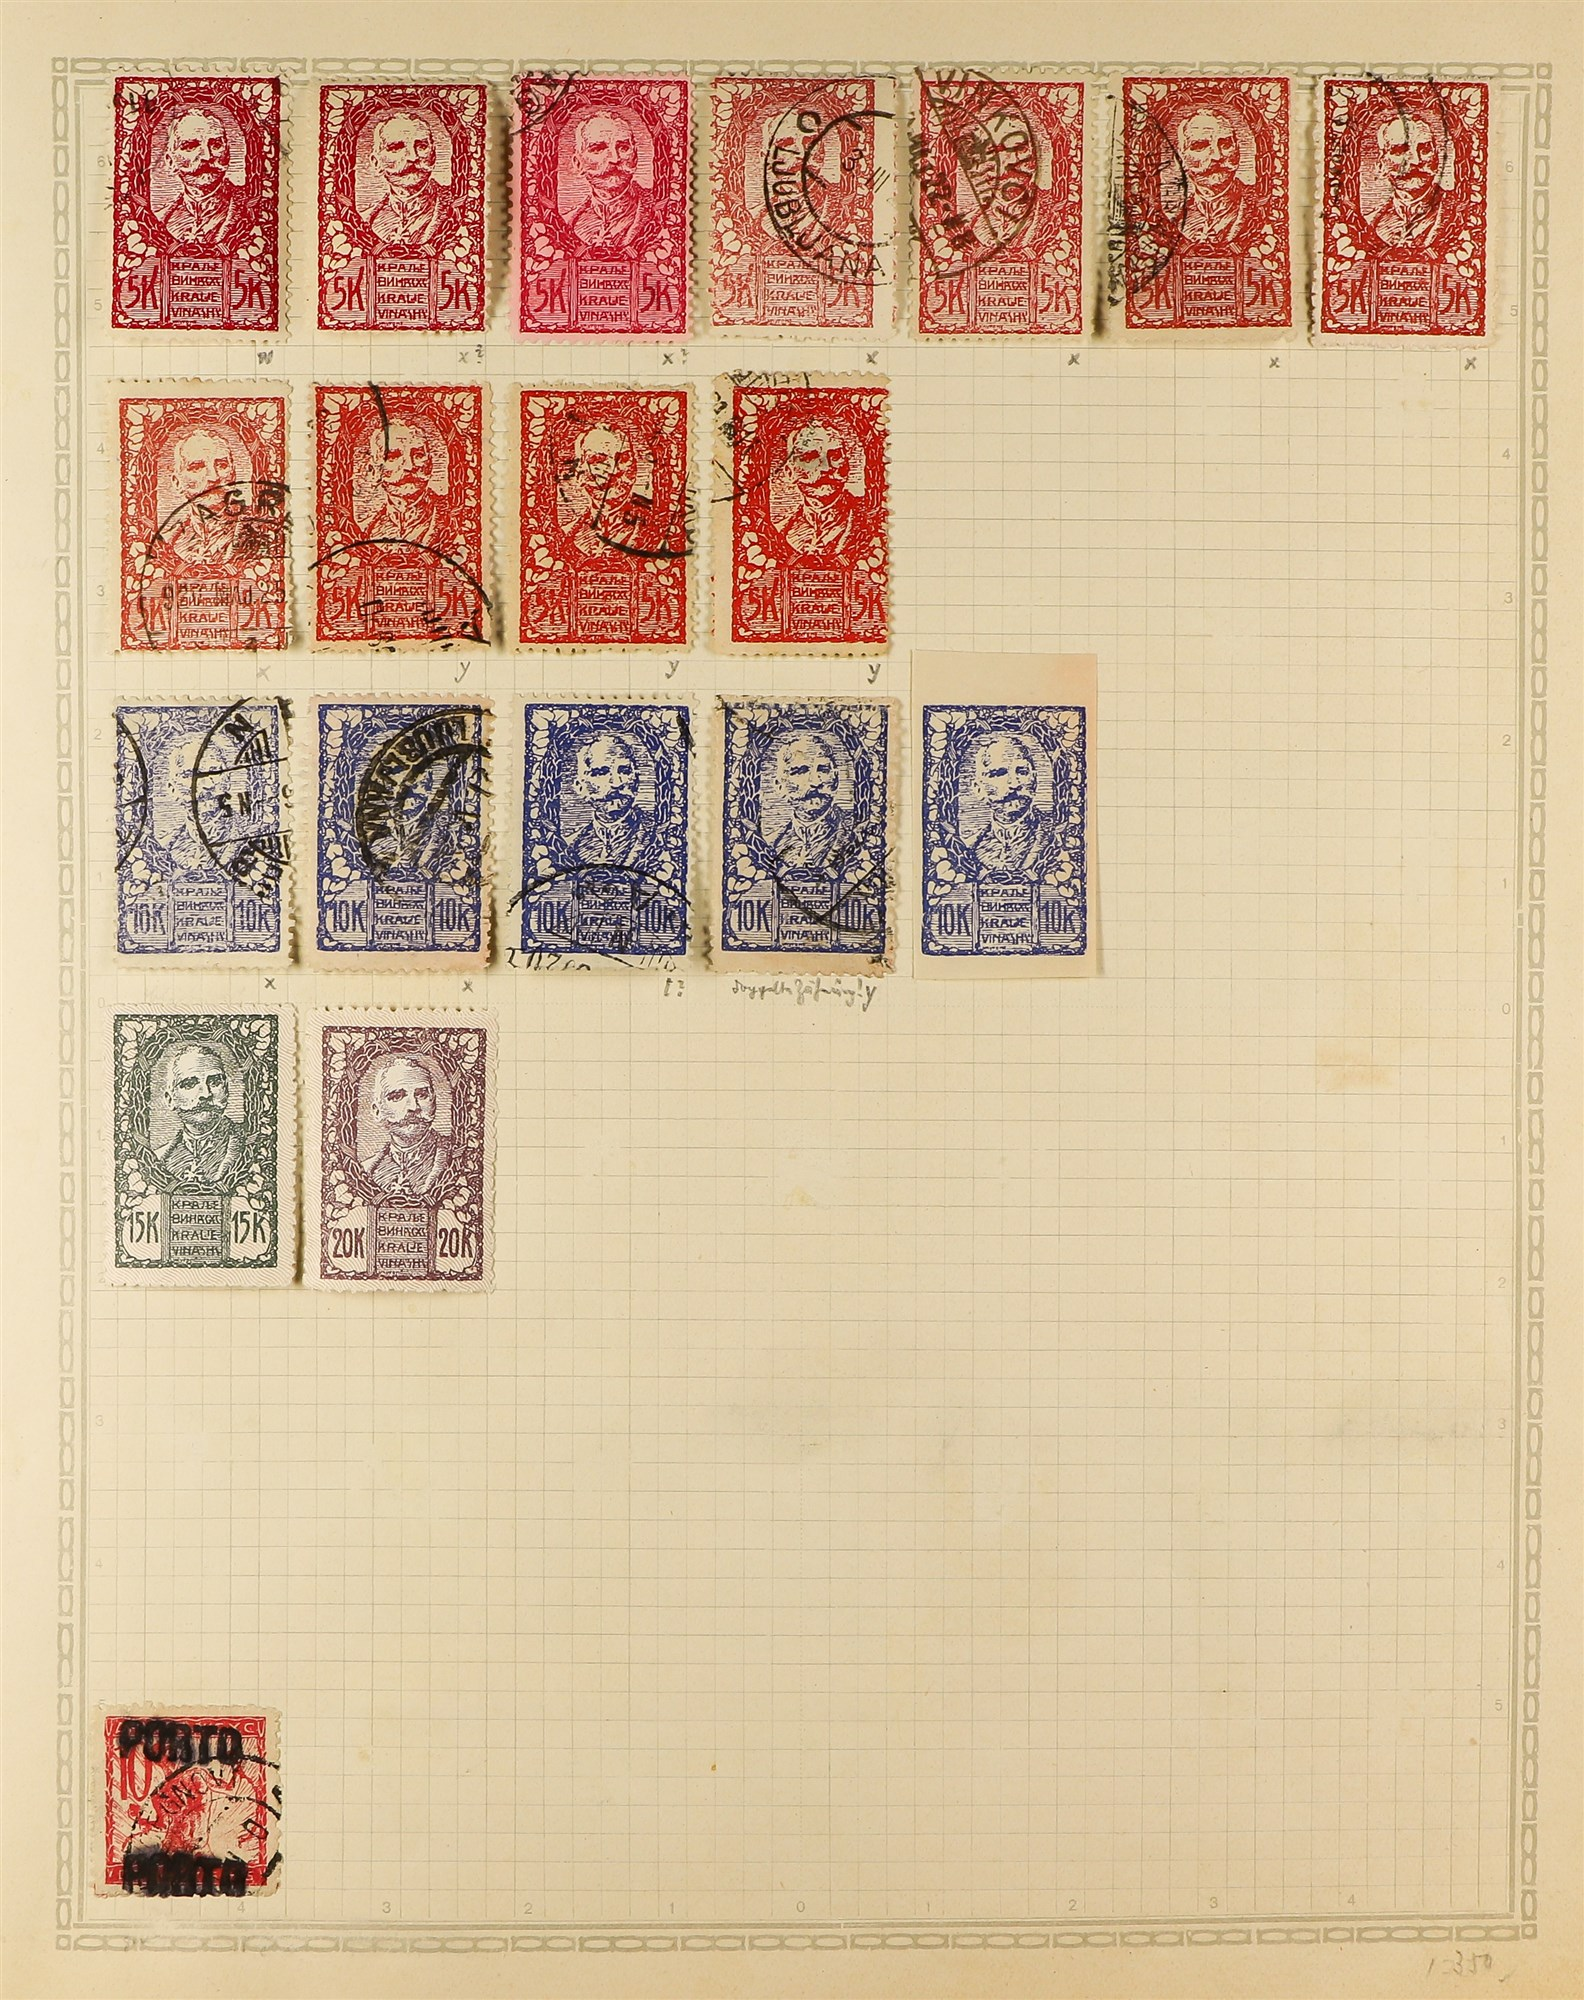 YUGOSLAVIA 1919-80 COLLECTION of mint and used issues in an album, incl. extensive Chainbreakers, - Image 3 of 17